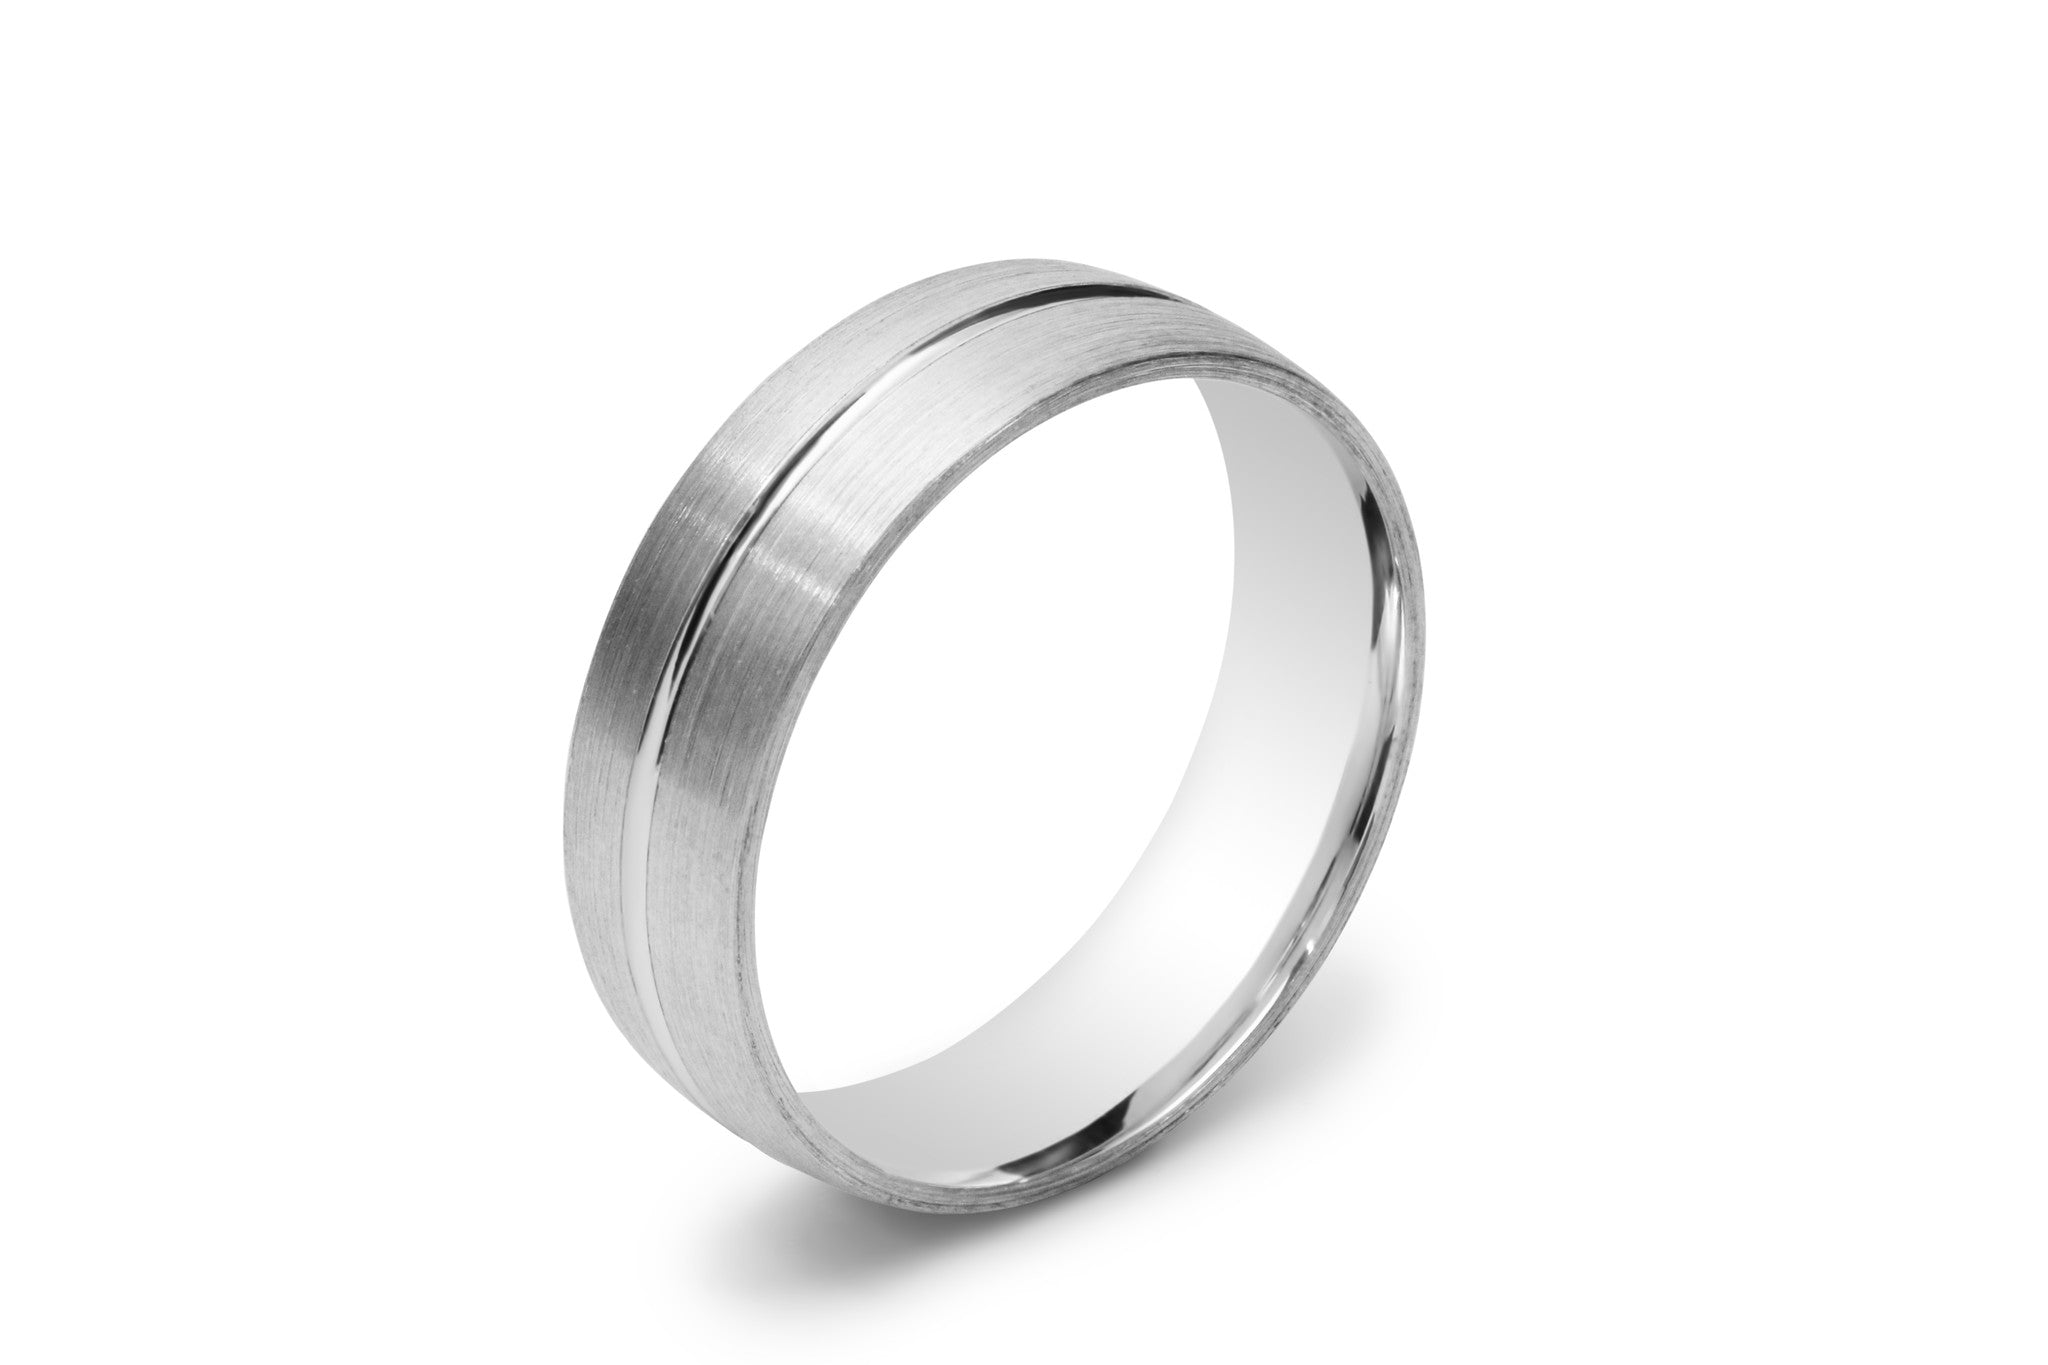 Half Round Men's Wedding Ring with a Scored Line